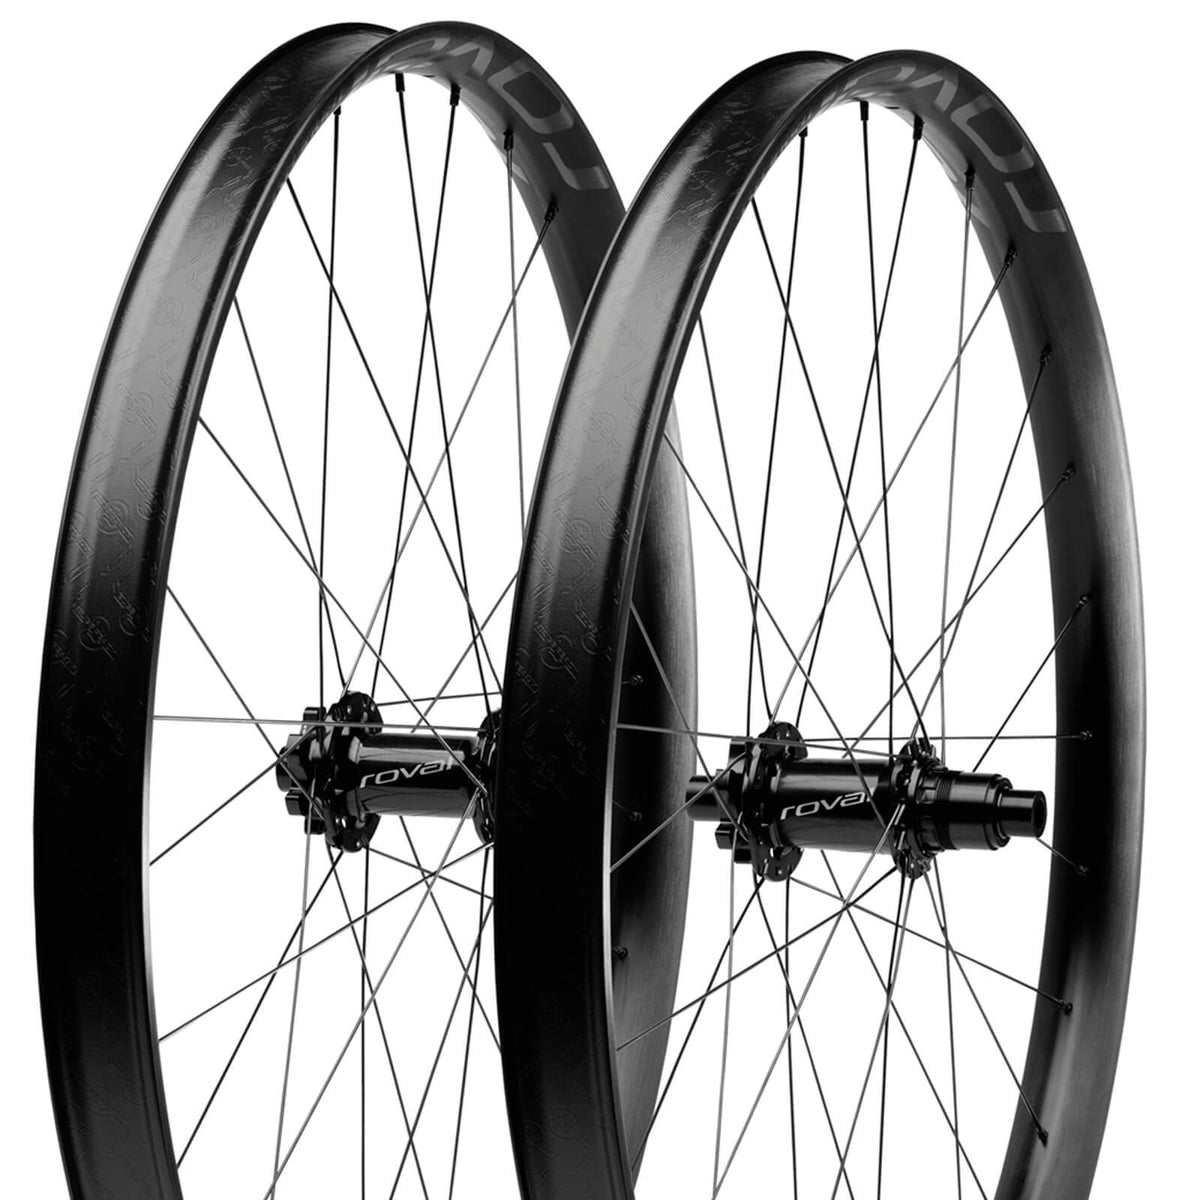 Traverse 38 wheelset